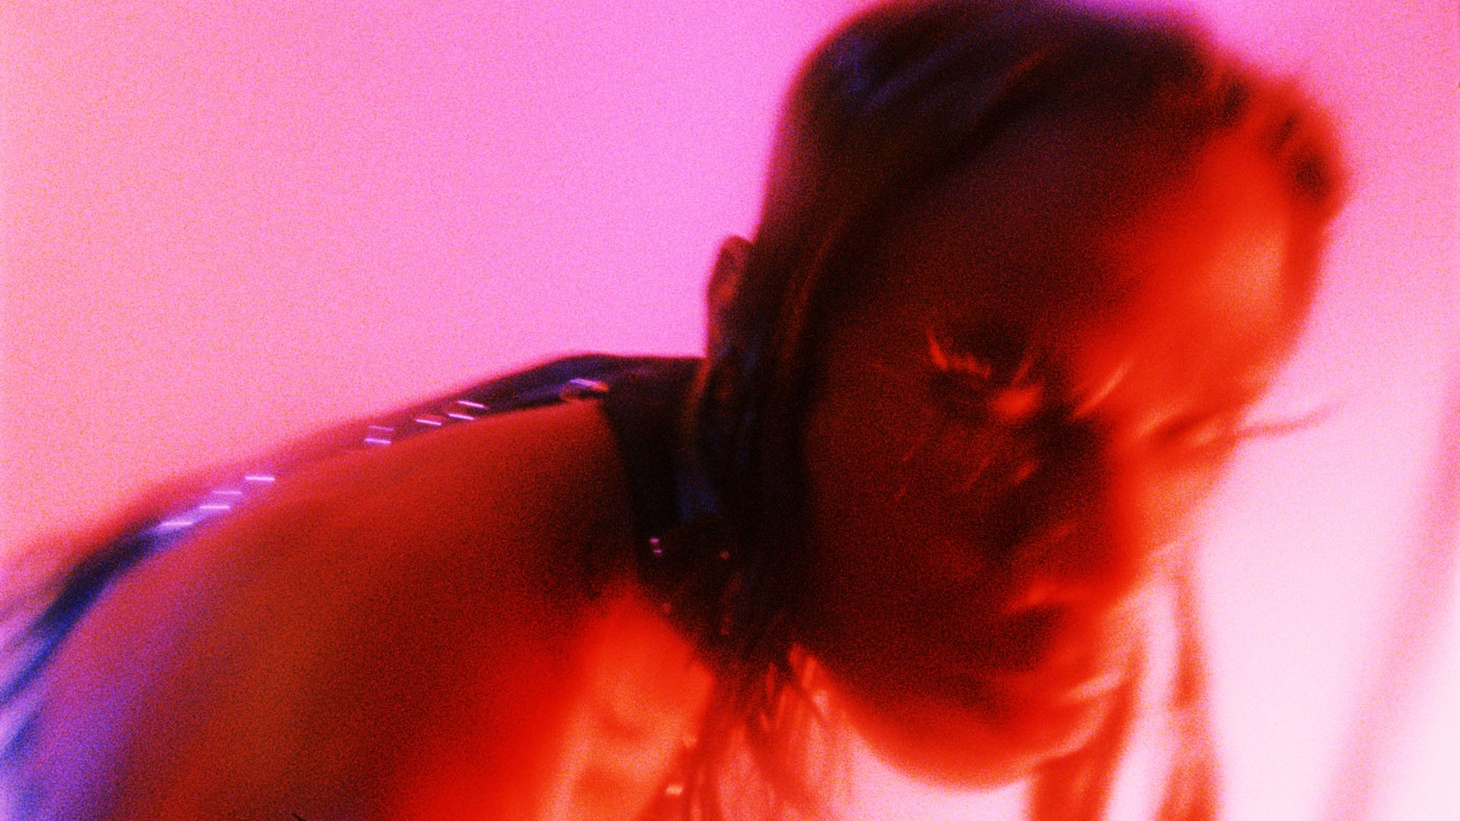 """Balancing chaos and restraint, Yves Tumor cuts deep on """"Gospel for a New Century."""" It serves as a springboard into the next phase of his artistic expression."""